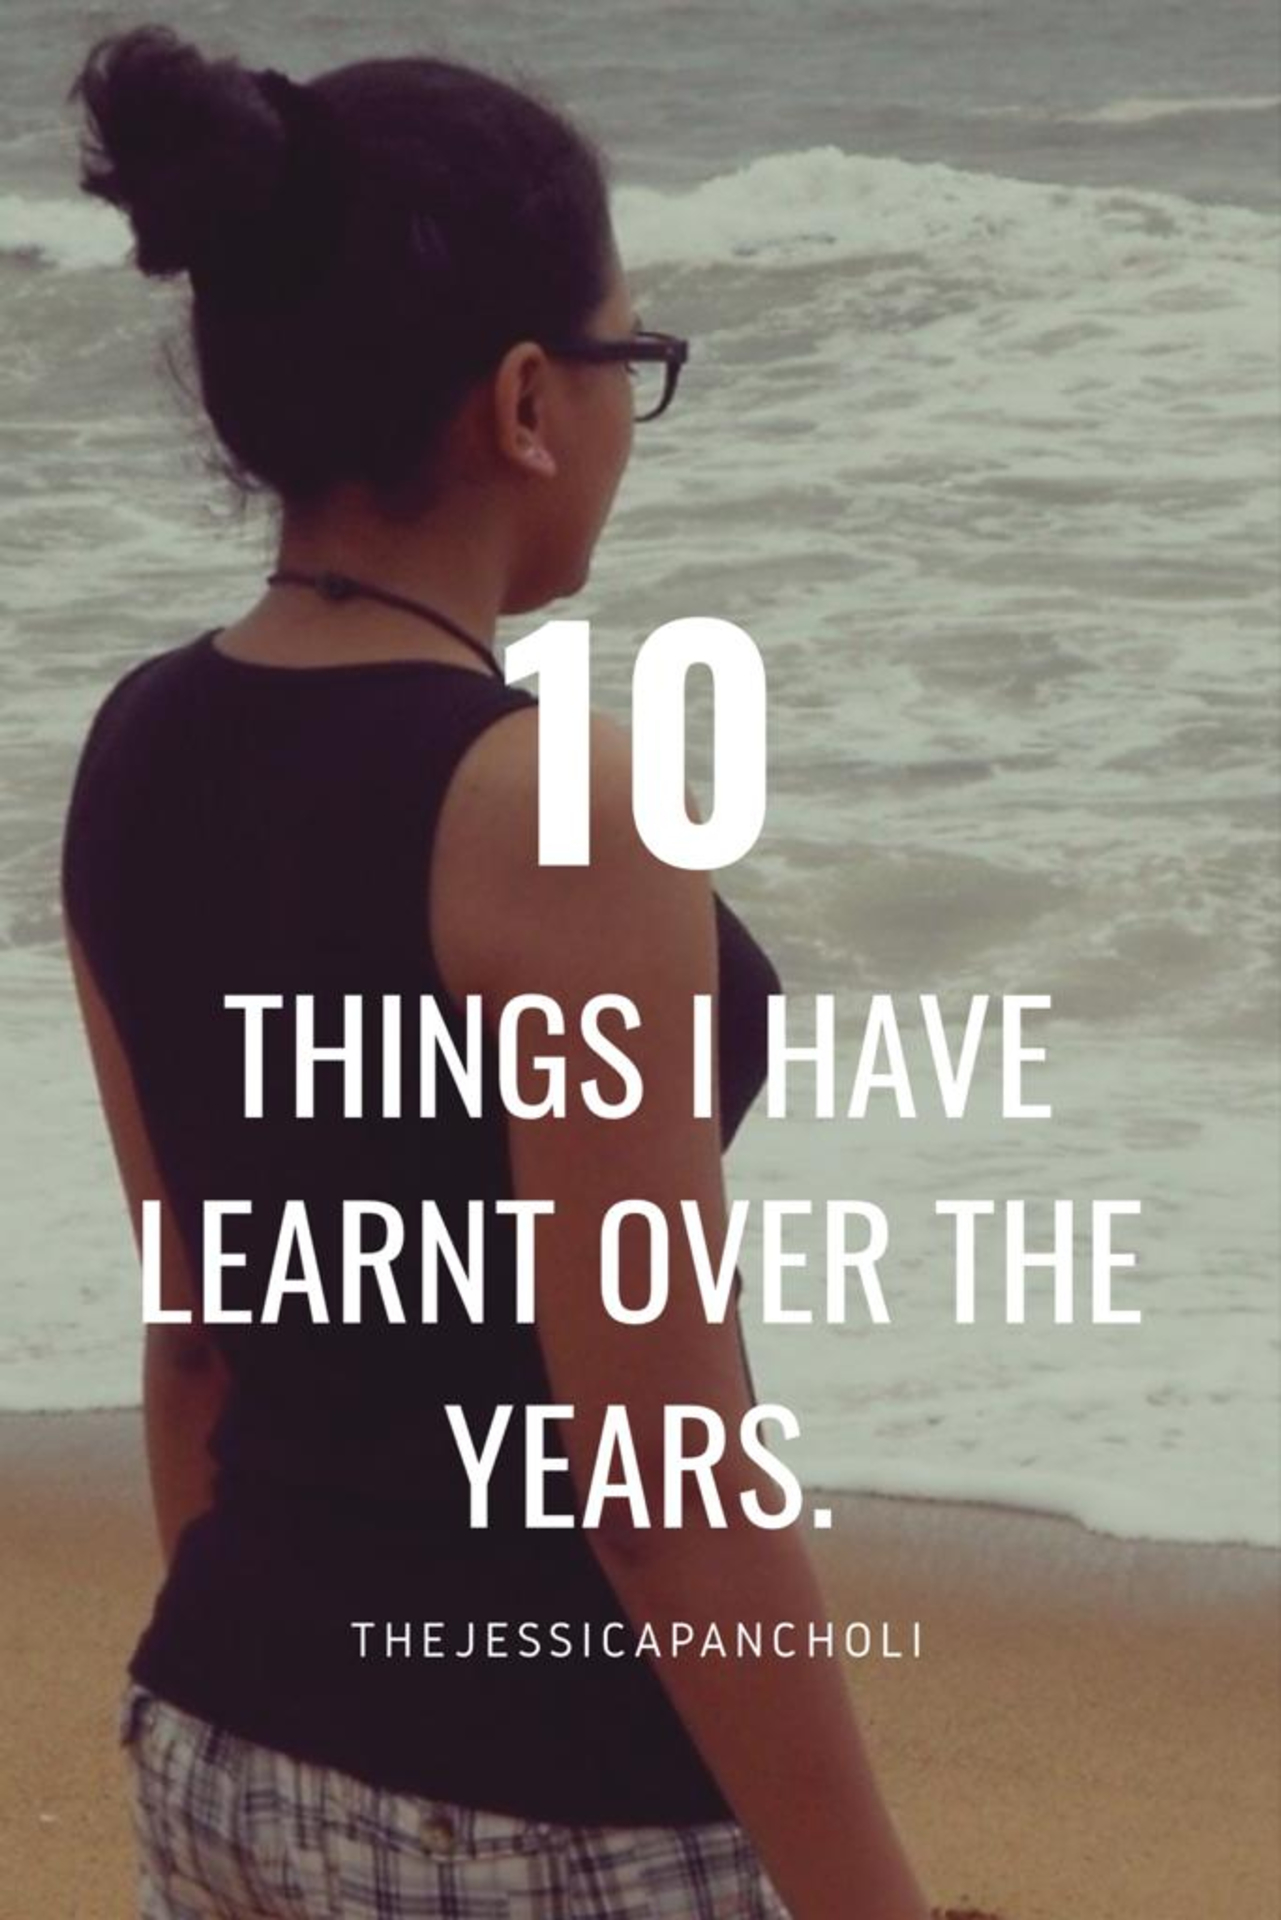 10 Things I Have Learnt over the Years image